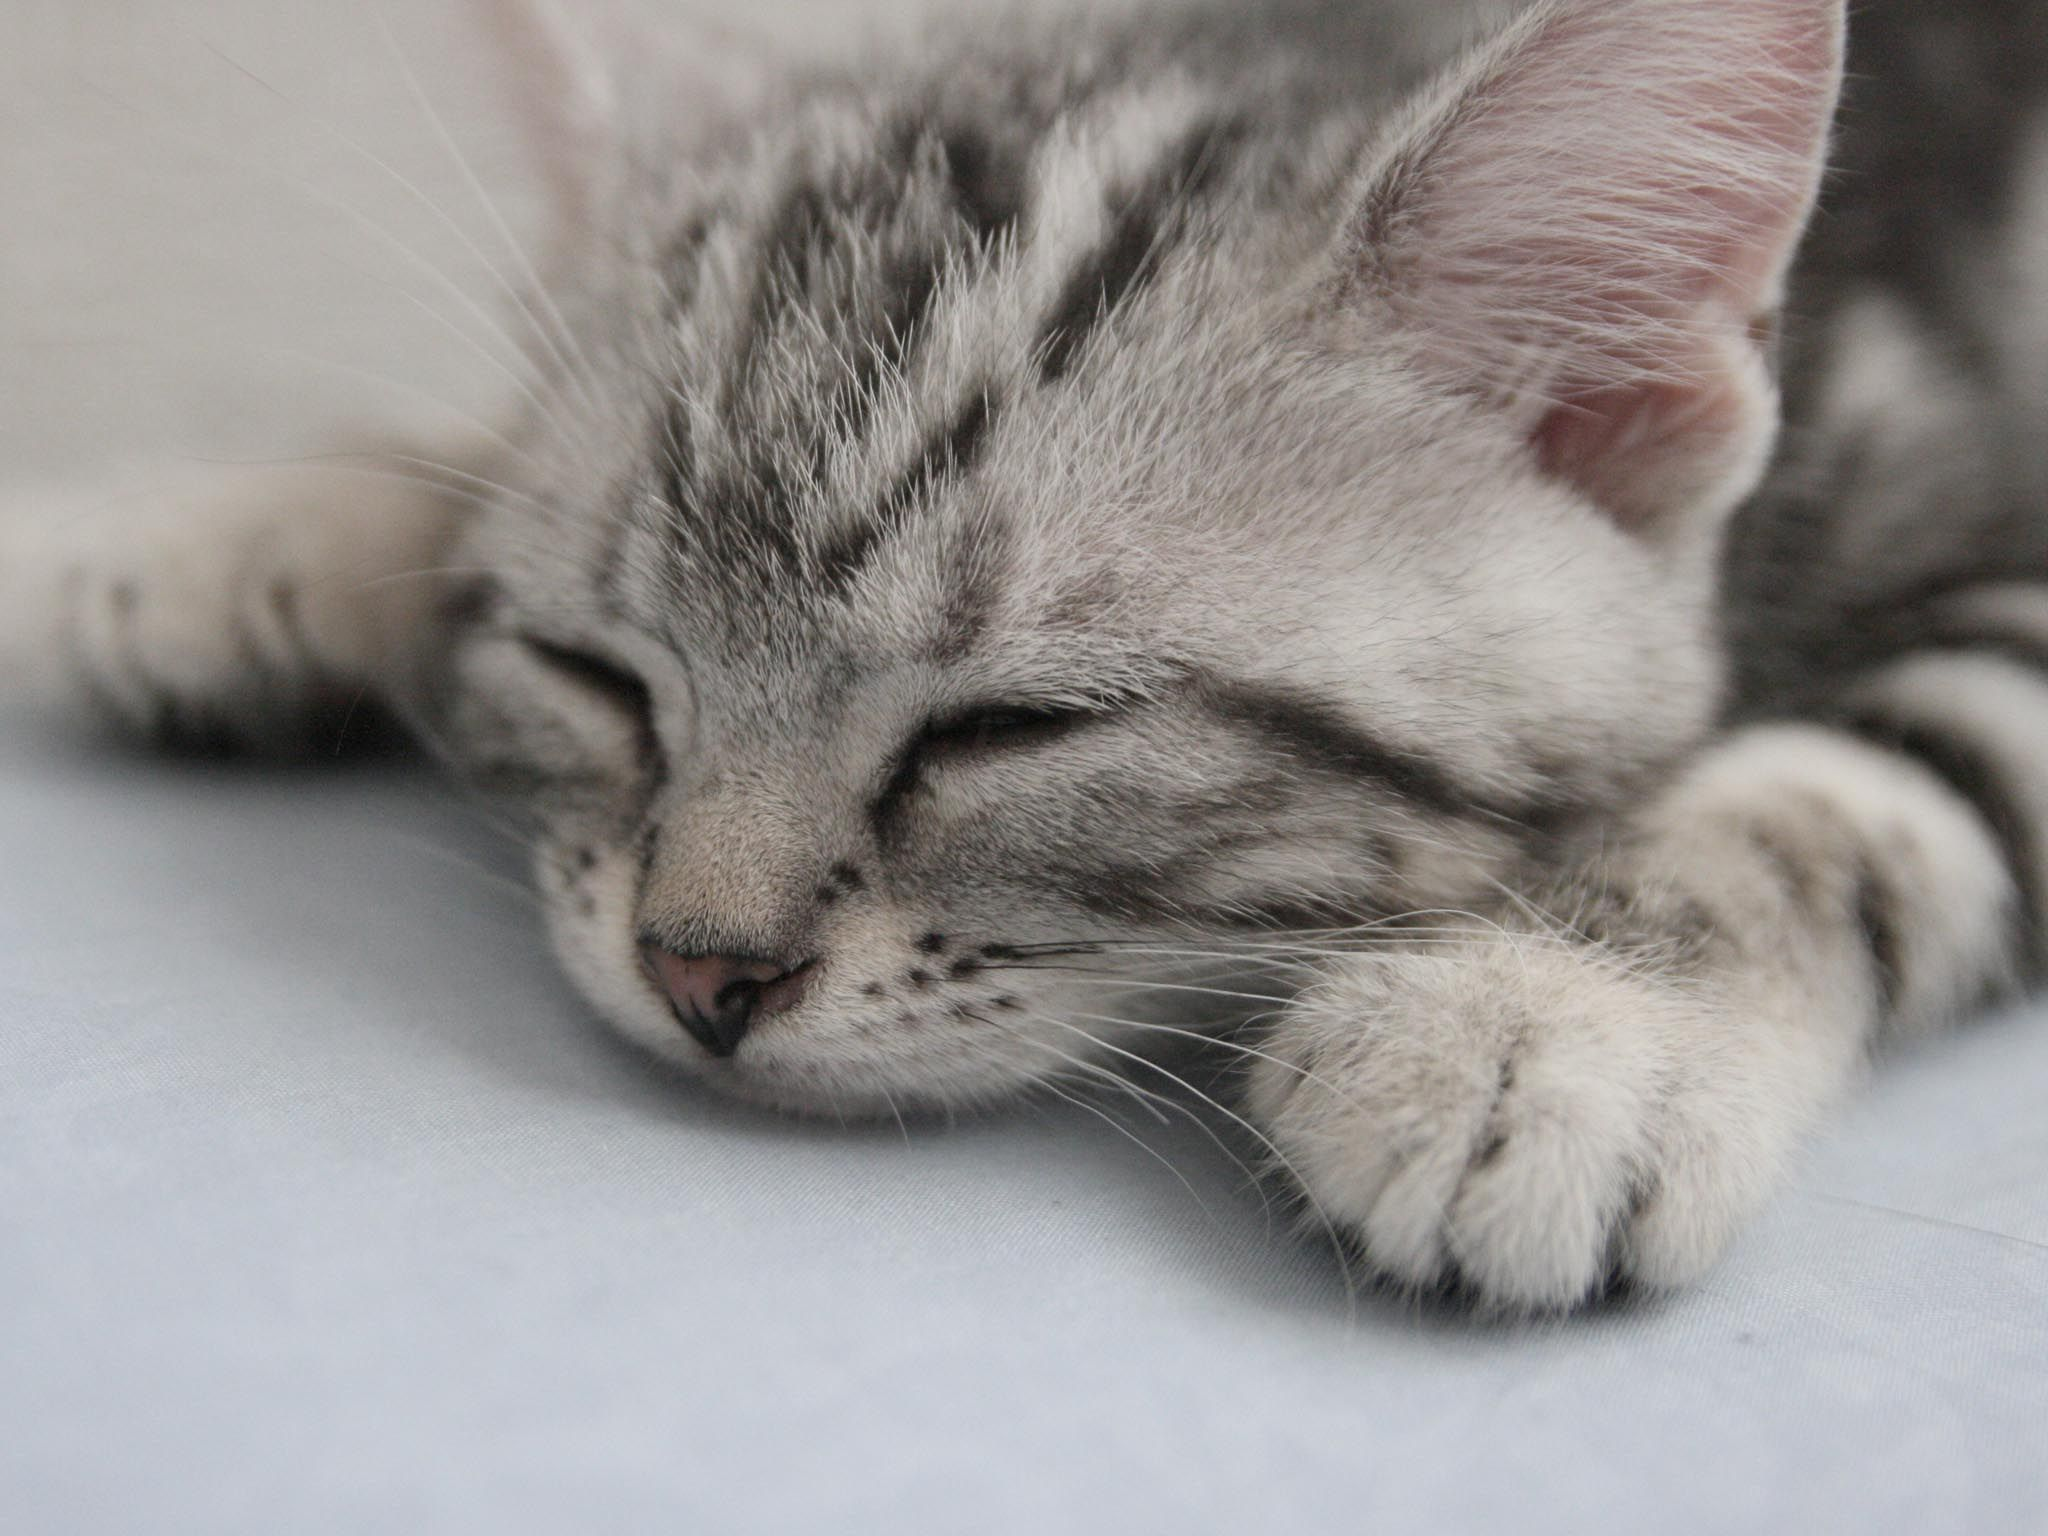 Cats And Kittens Pictures Cute Cat Is Sleeping American Shorthair Cat Kittens Cutest Cute Animals